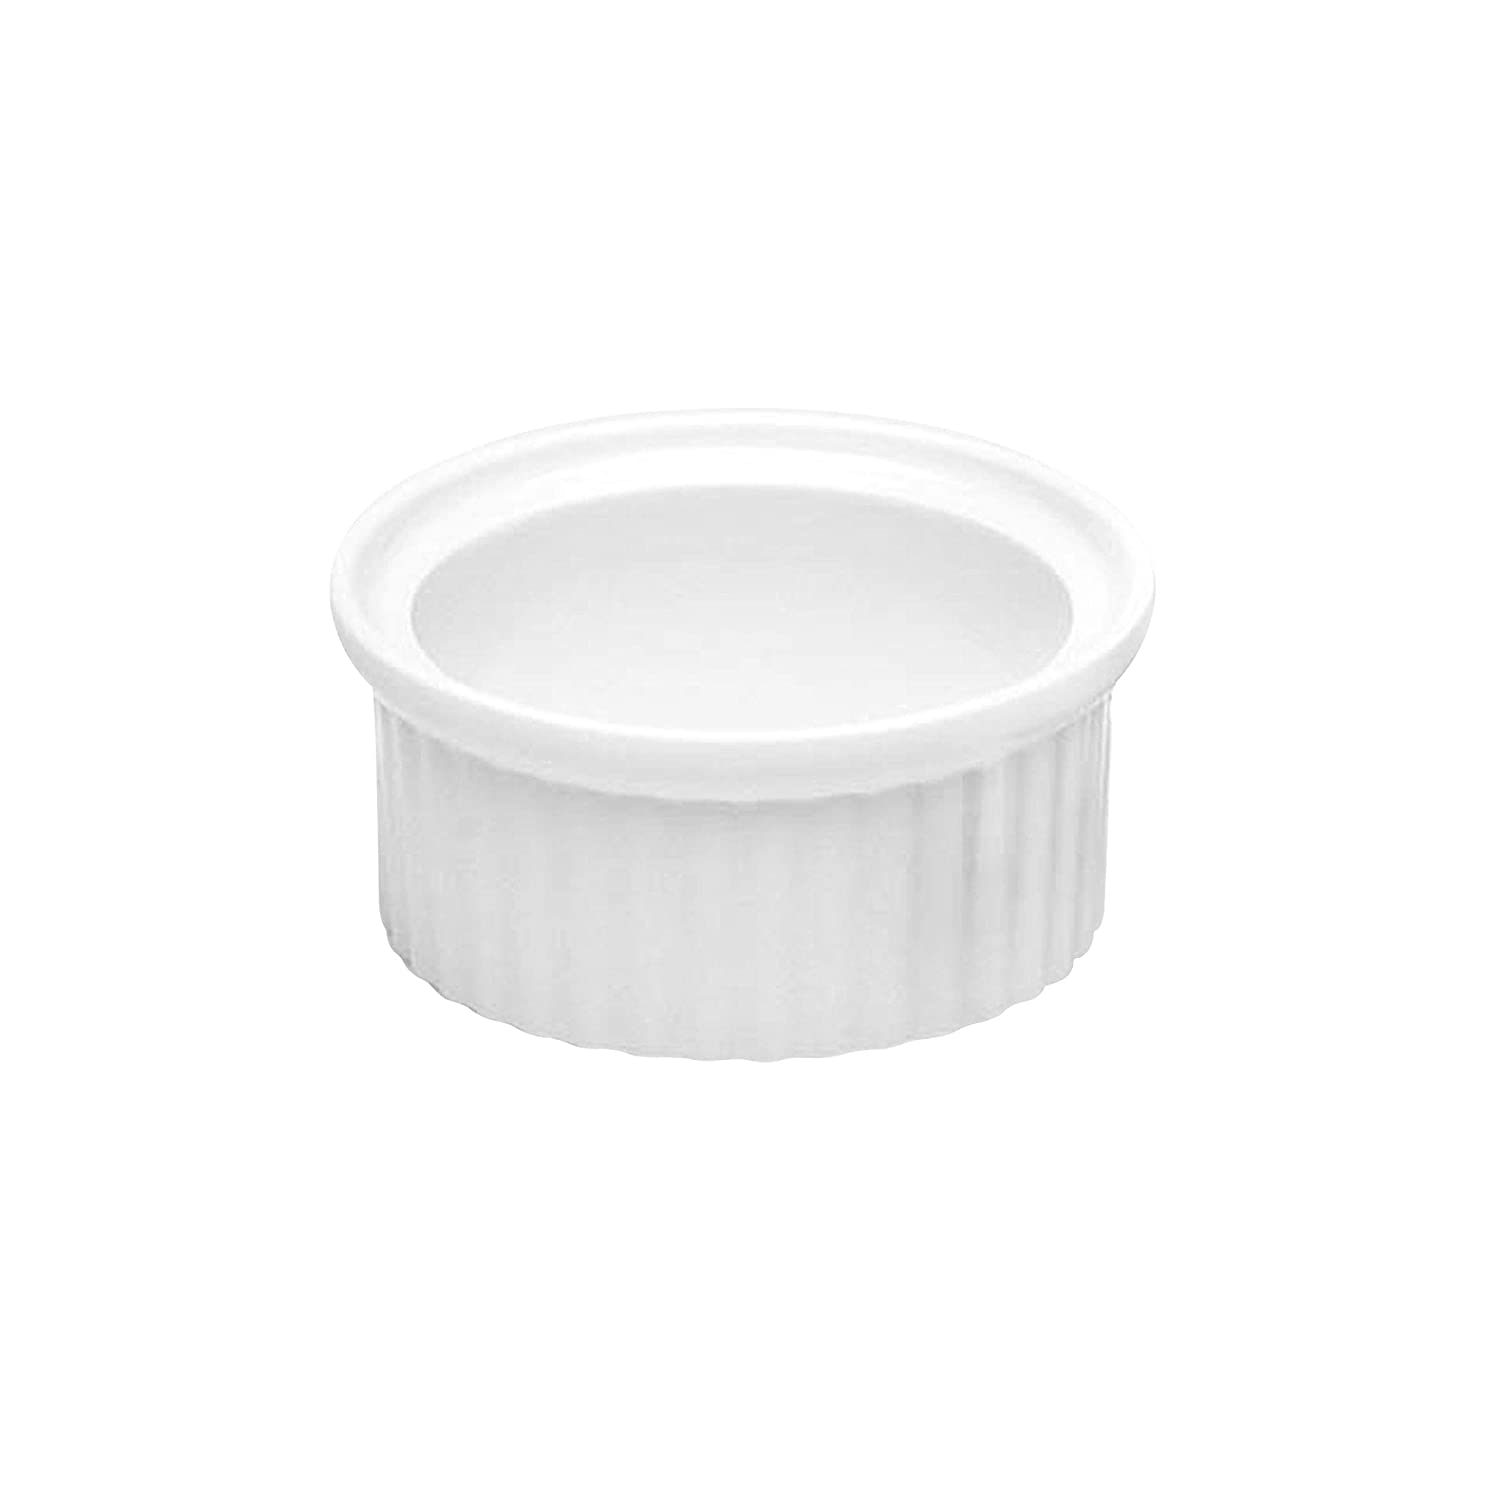 Pack of 6 Melamine Elite Global Solutions R1-B Ribbed Ramekin x 1 h 2 1//8 Dia Black